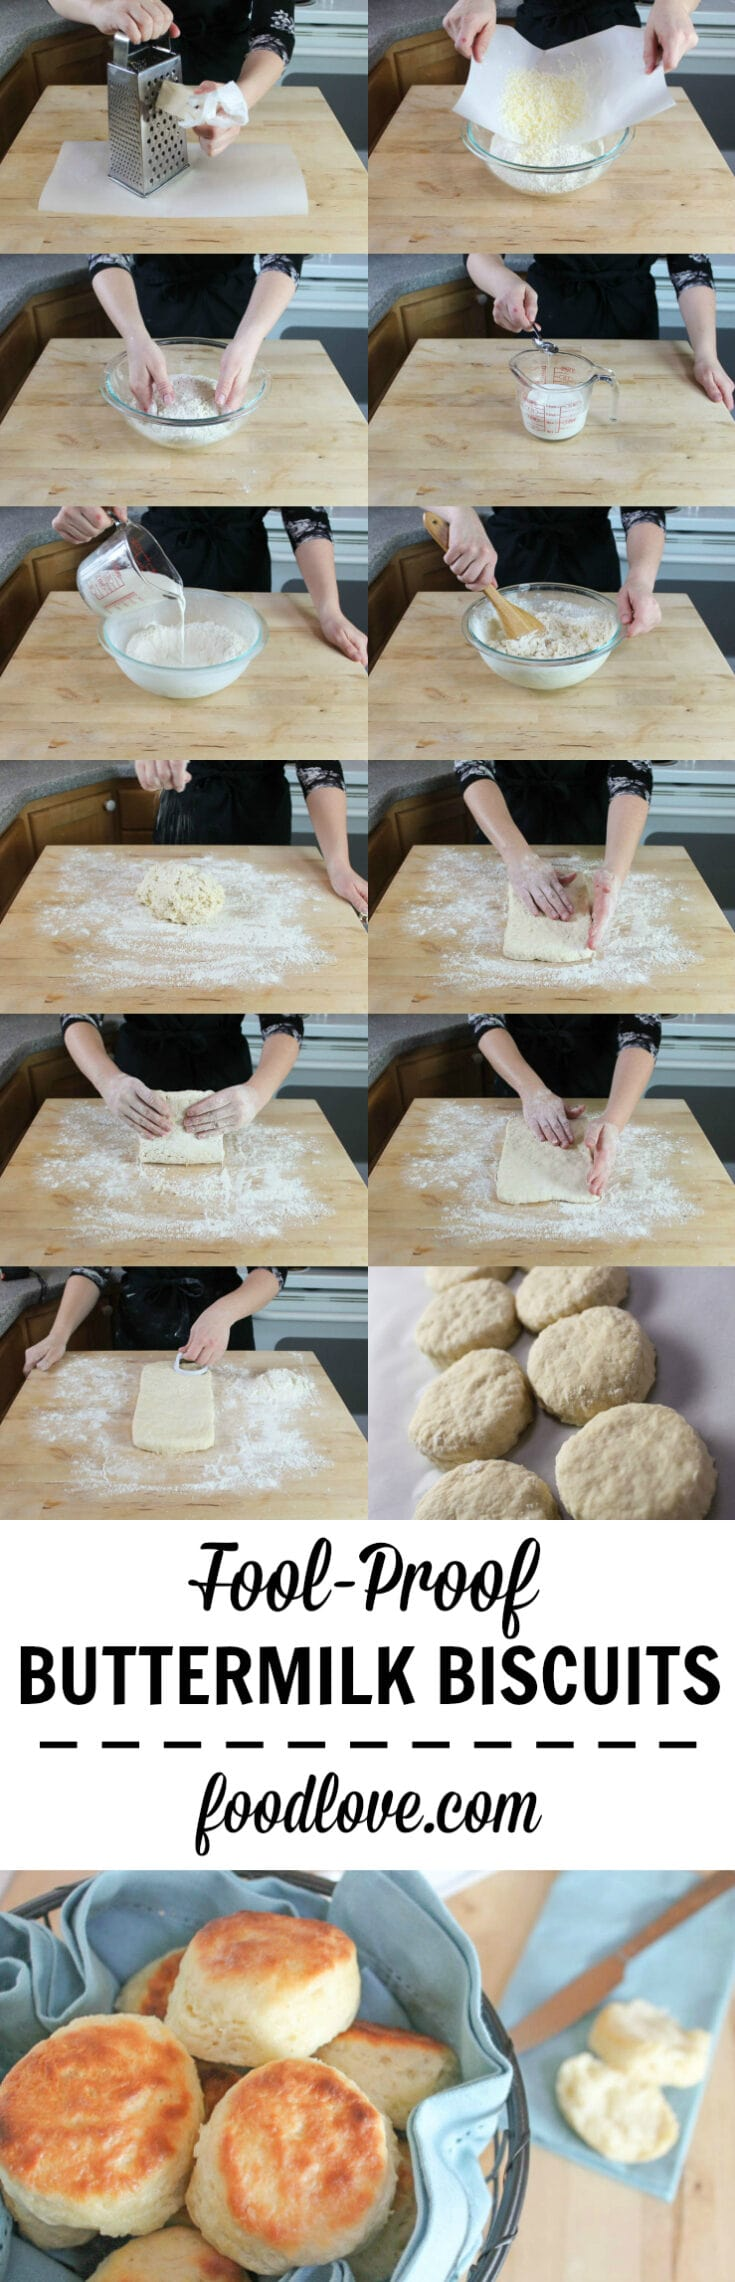 Step by step directions for making fool-proof light, flaky, buttery buttermilk biscuits from scratch. No baking mixes or canned biscuits required. #biscuits #baking #buttermilkbiscuits #homemade #fromscratch #foodlove